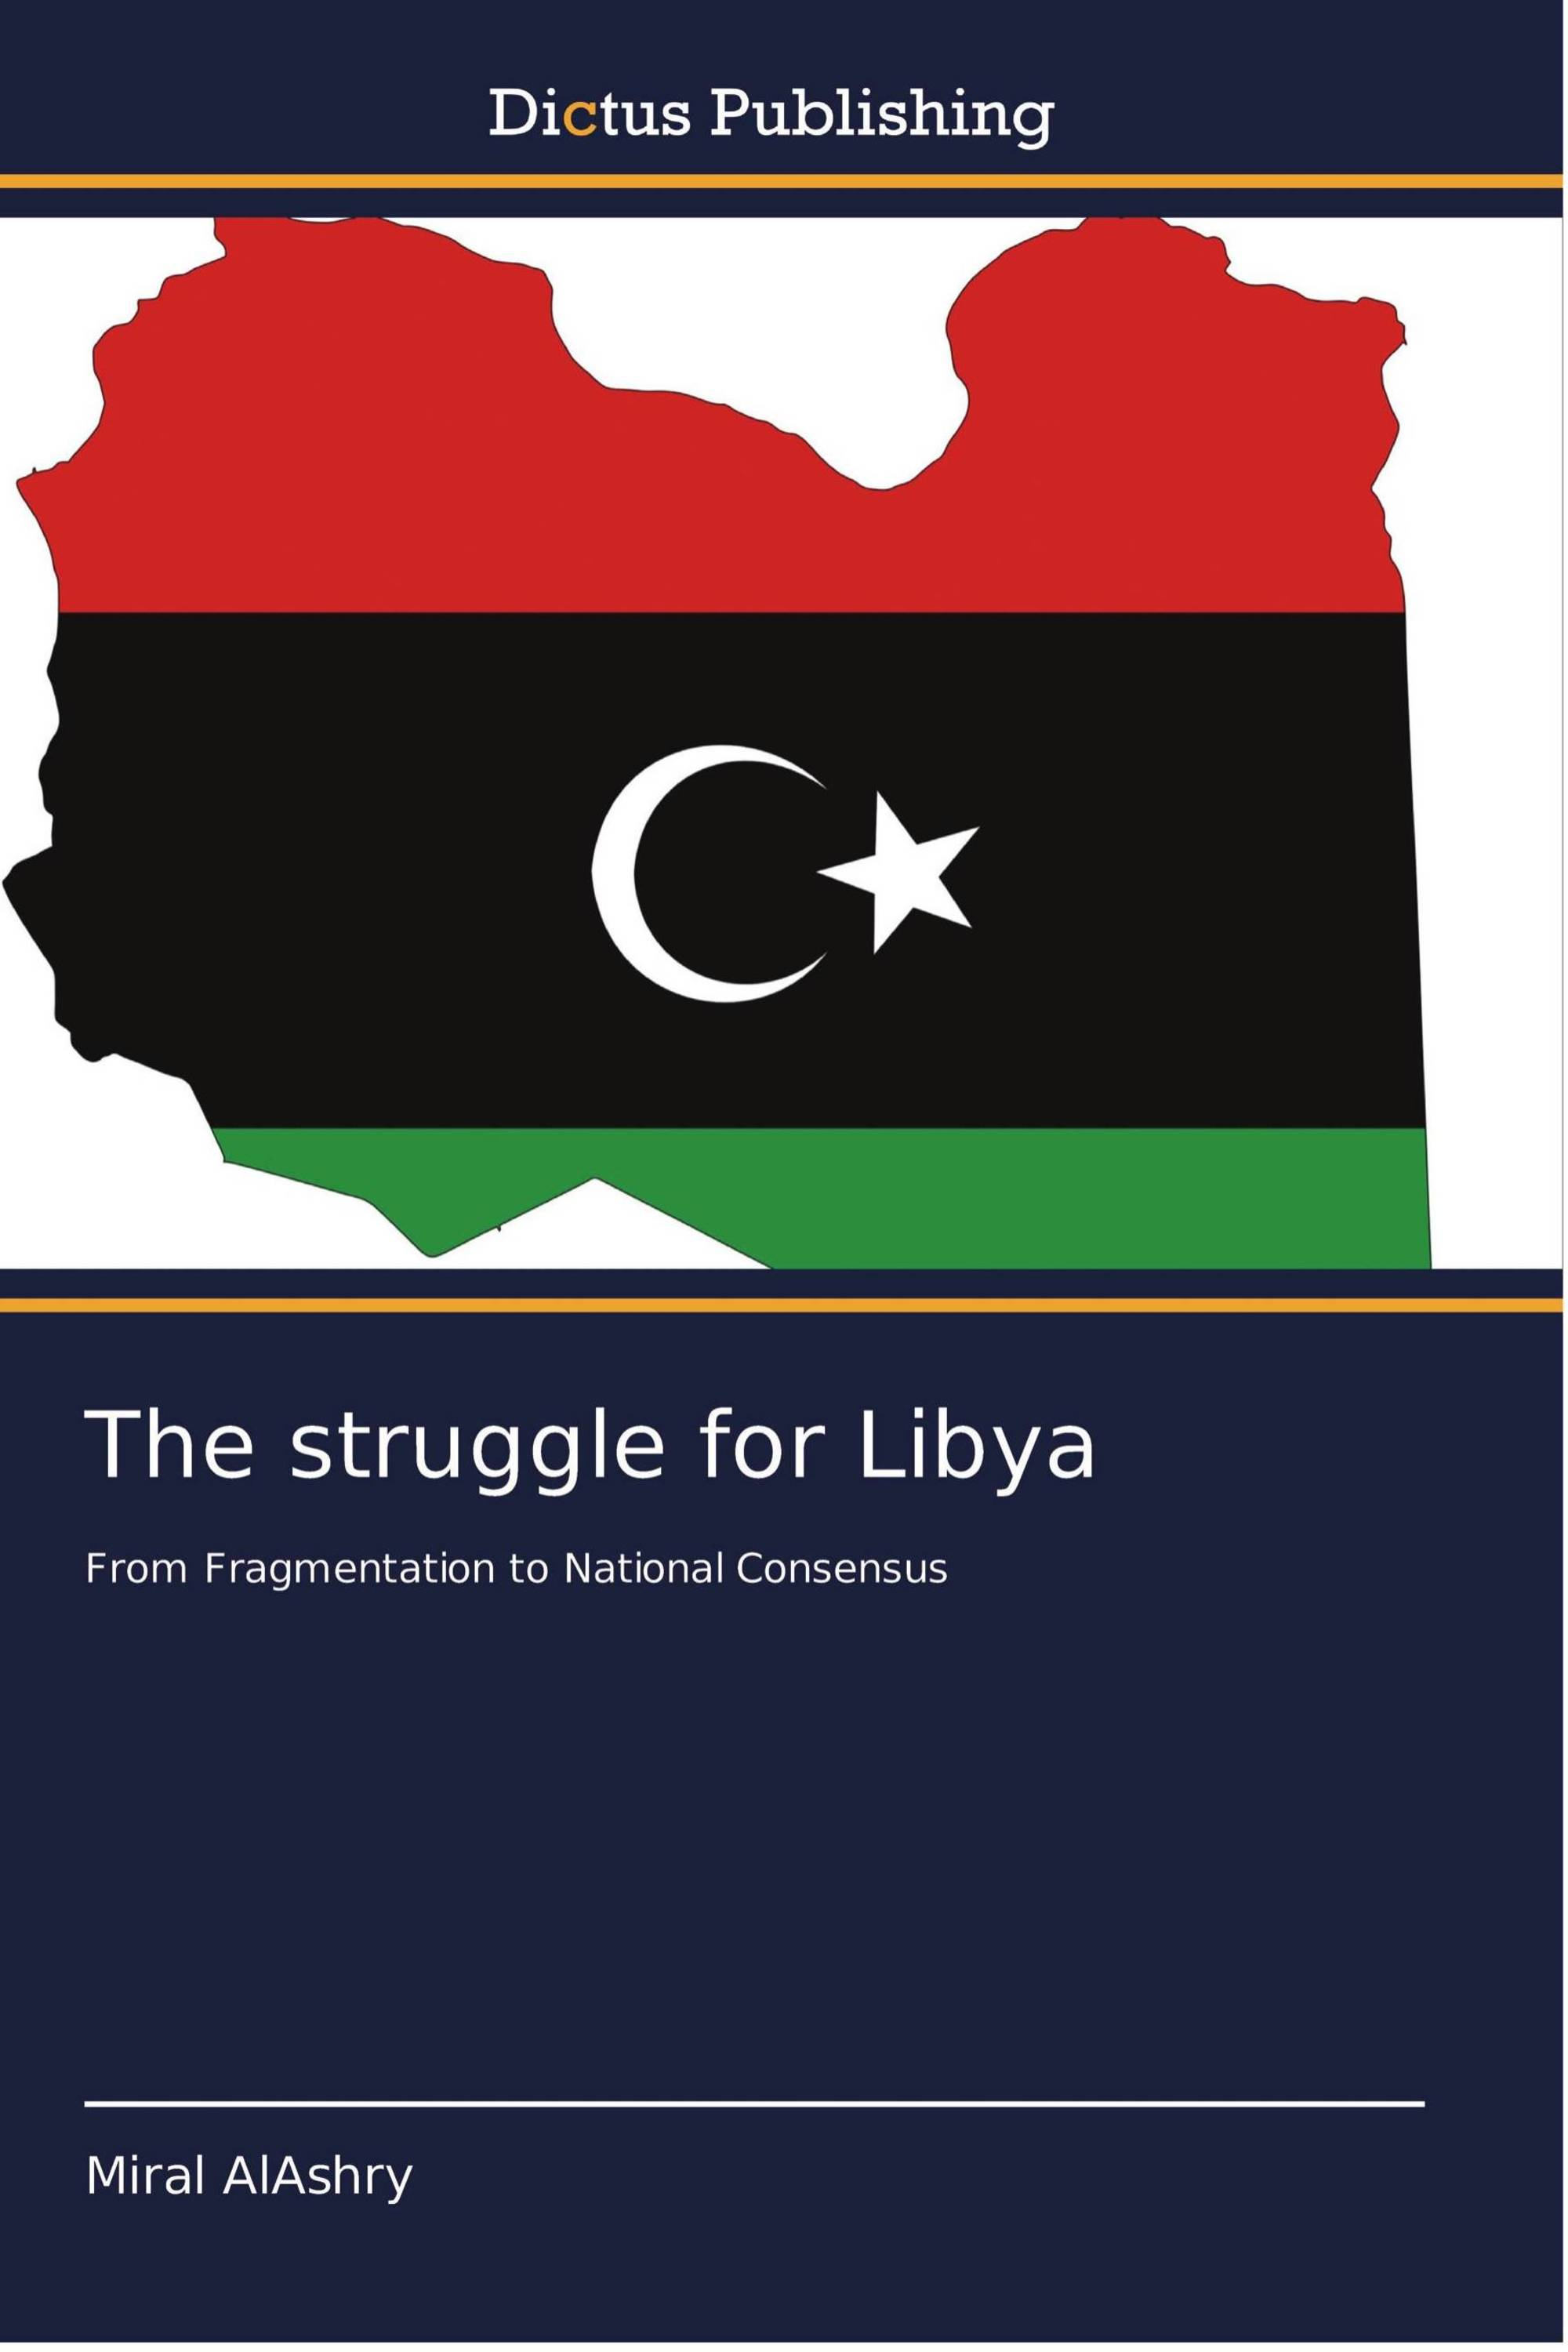 The struggle for Libya